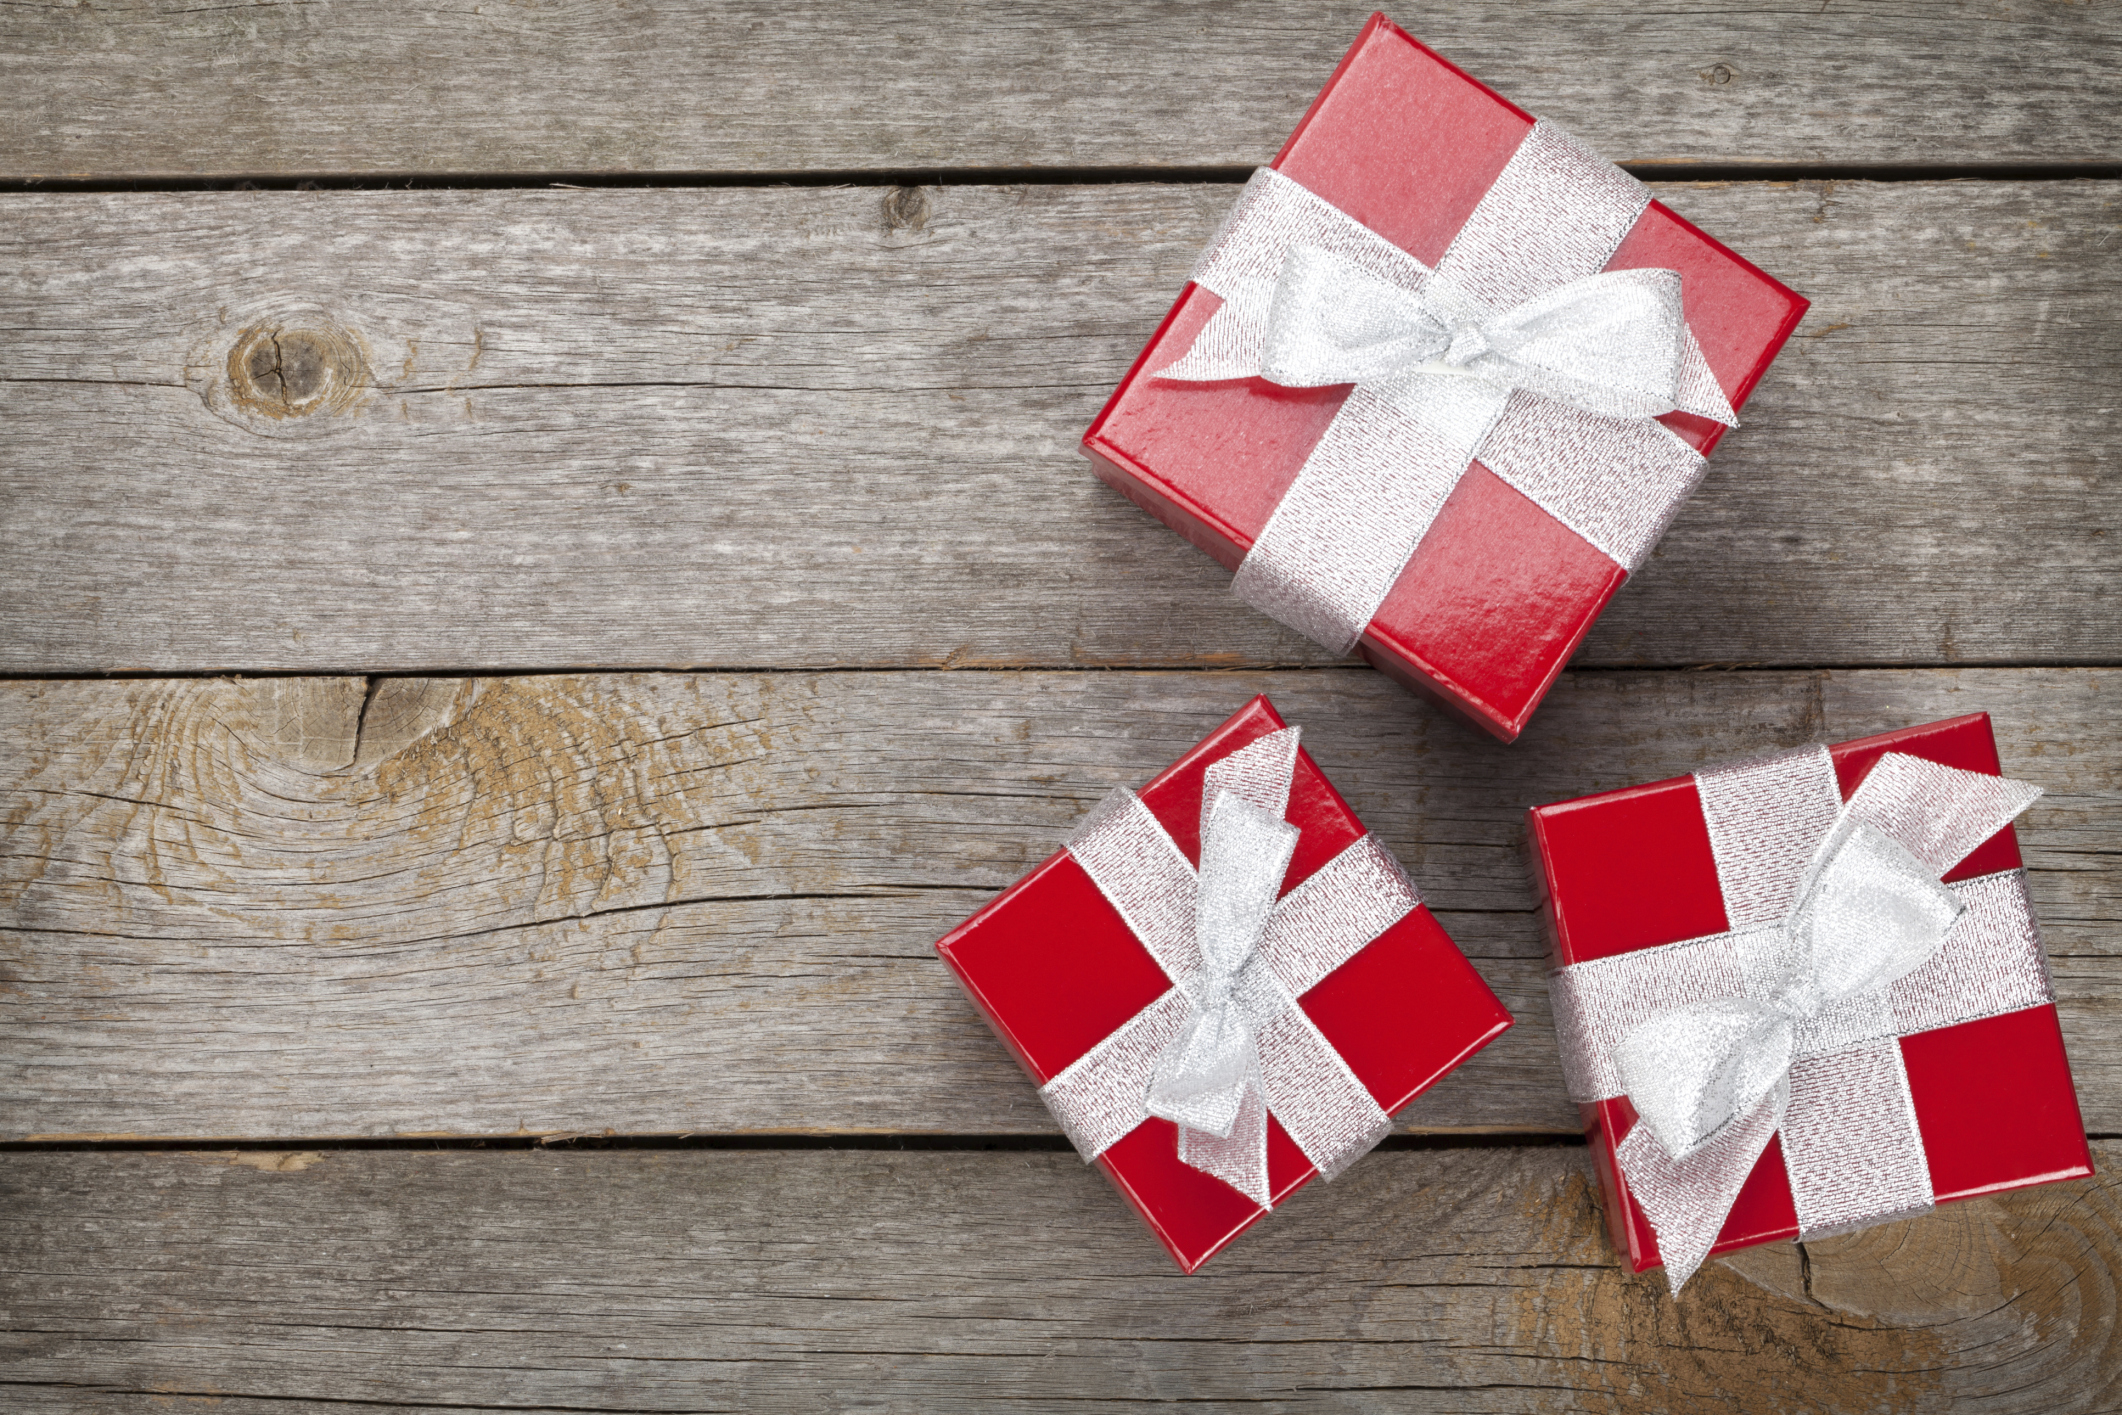 Gift guide: Gift of financial empowerment